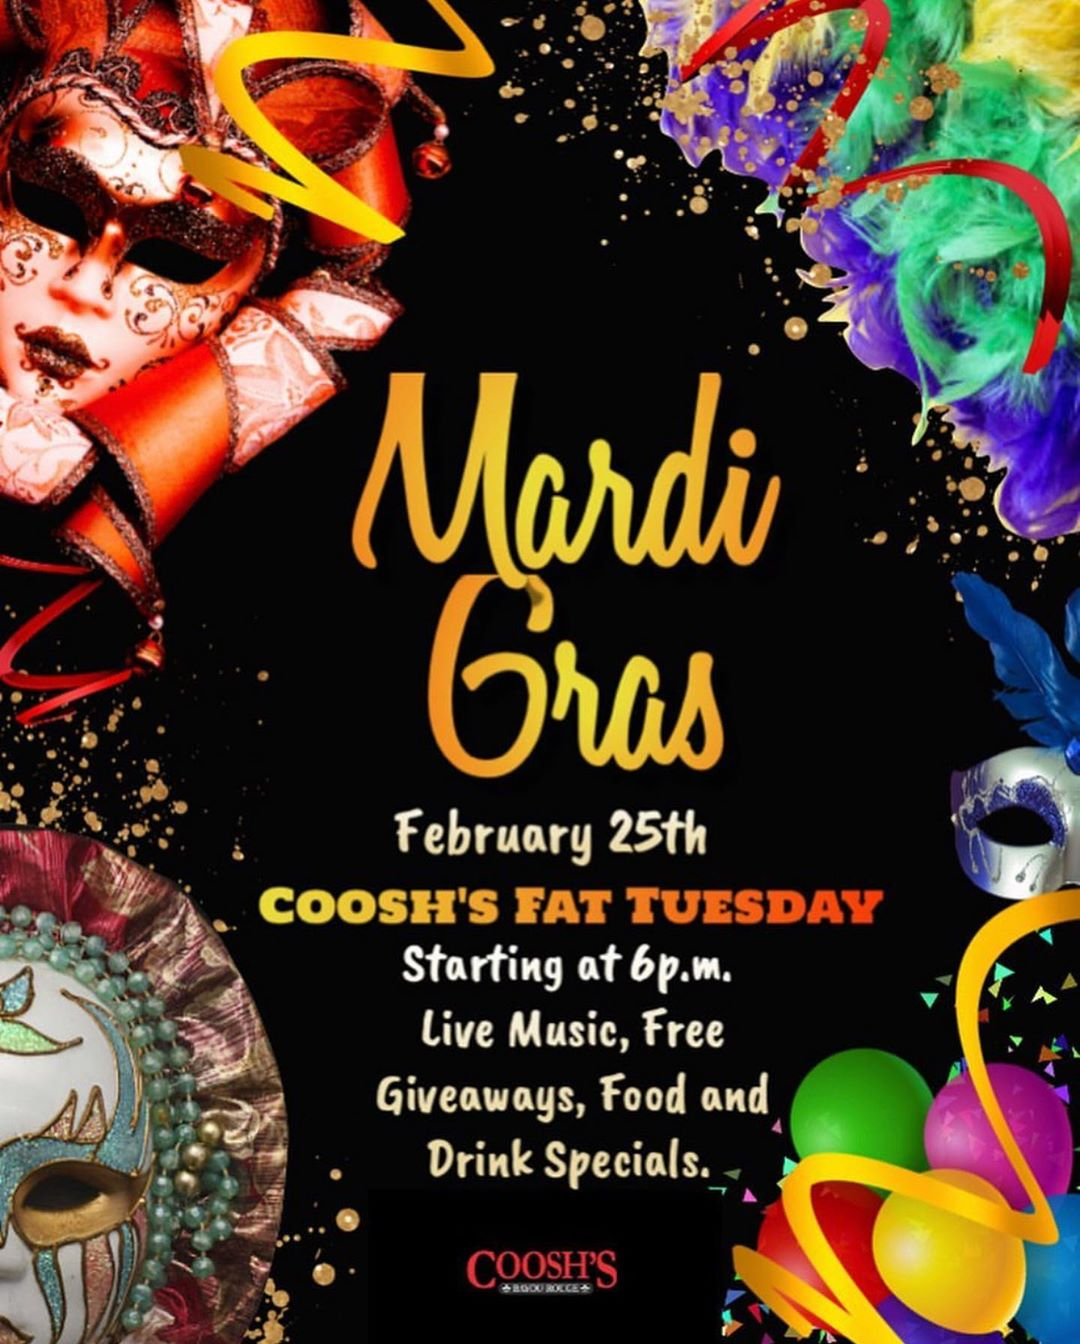 Coosh's Bayou Rouge is bringing Mardi Gras to Madison St. in the CollegeTown district! Come out and celebrate their festive Fat Tuesday event ‪tomorrow, Tuesday, February 25,‬ and enjoy live music, food and drink specials, free giveaways, plus more! The party kicks off ‪at 6:00 p.m.‬ and is free admission for all. See specials below: . . . Drink Specials: -5 Captain Hurricanes -$5 Daiquiris -$5 Sevilla 75s . . . Food Specials: -$5Jambalaya Pasta -$4 Beignet Fingers . . . This is one celebration you don't want to miss!